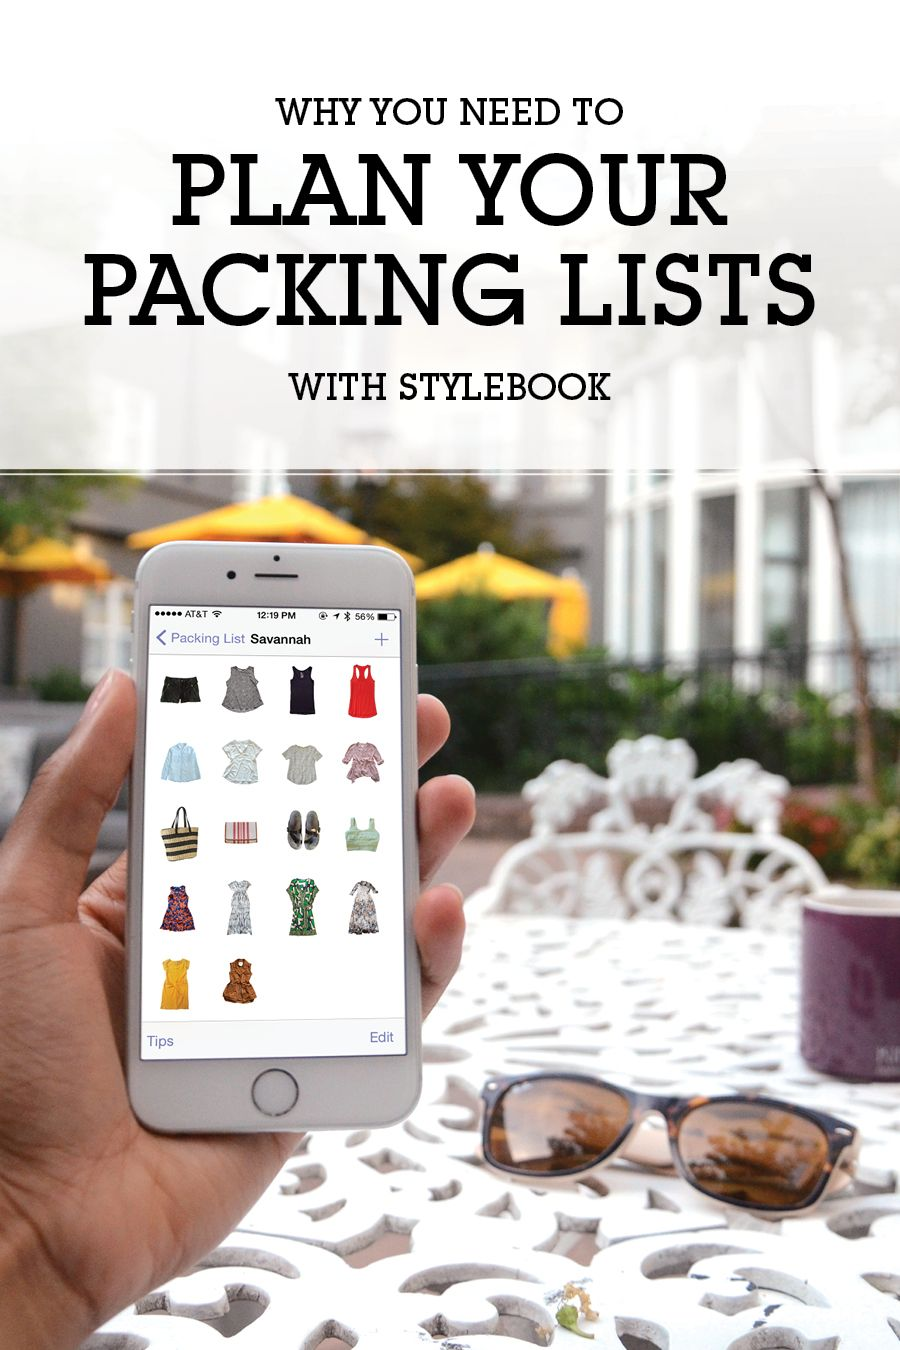 How To Pack With Stylebook | Cars, Vacations and Phones